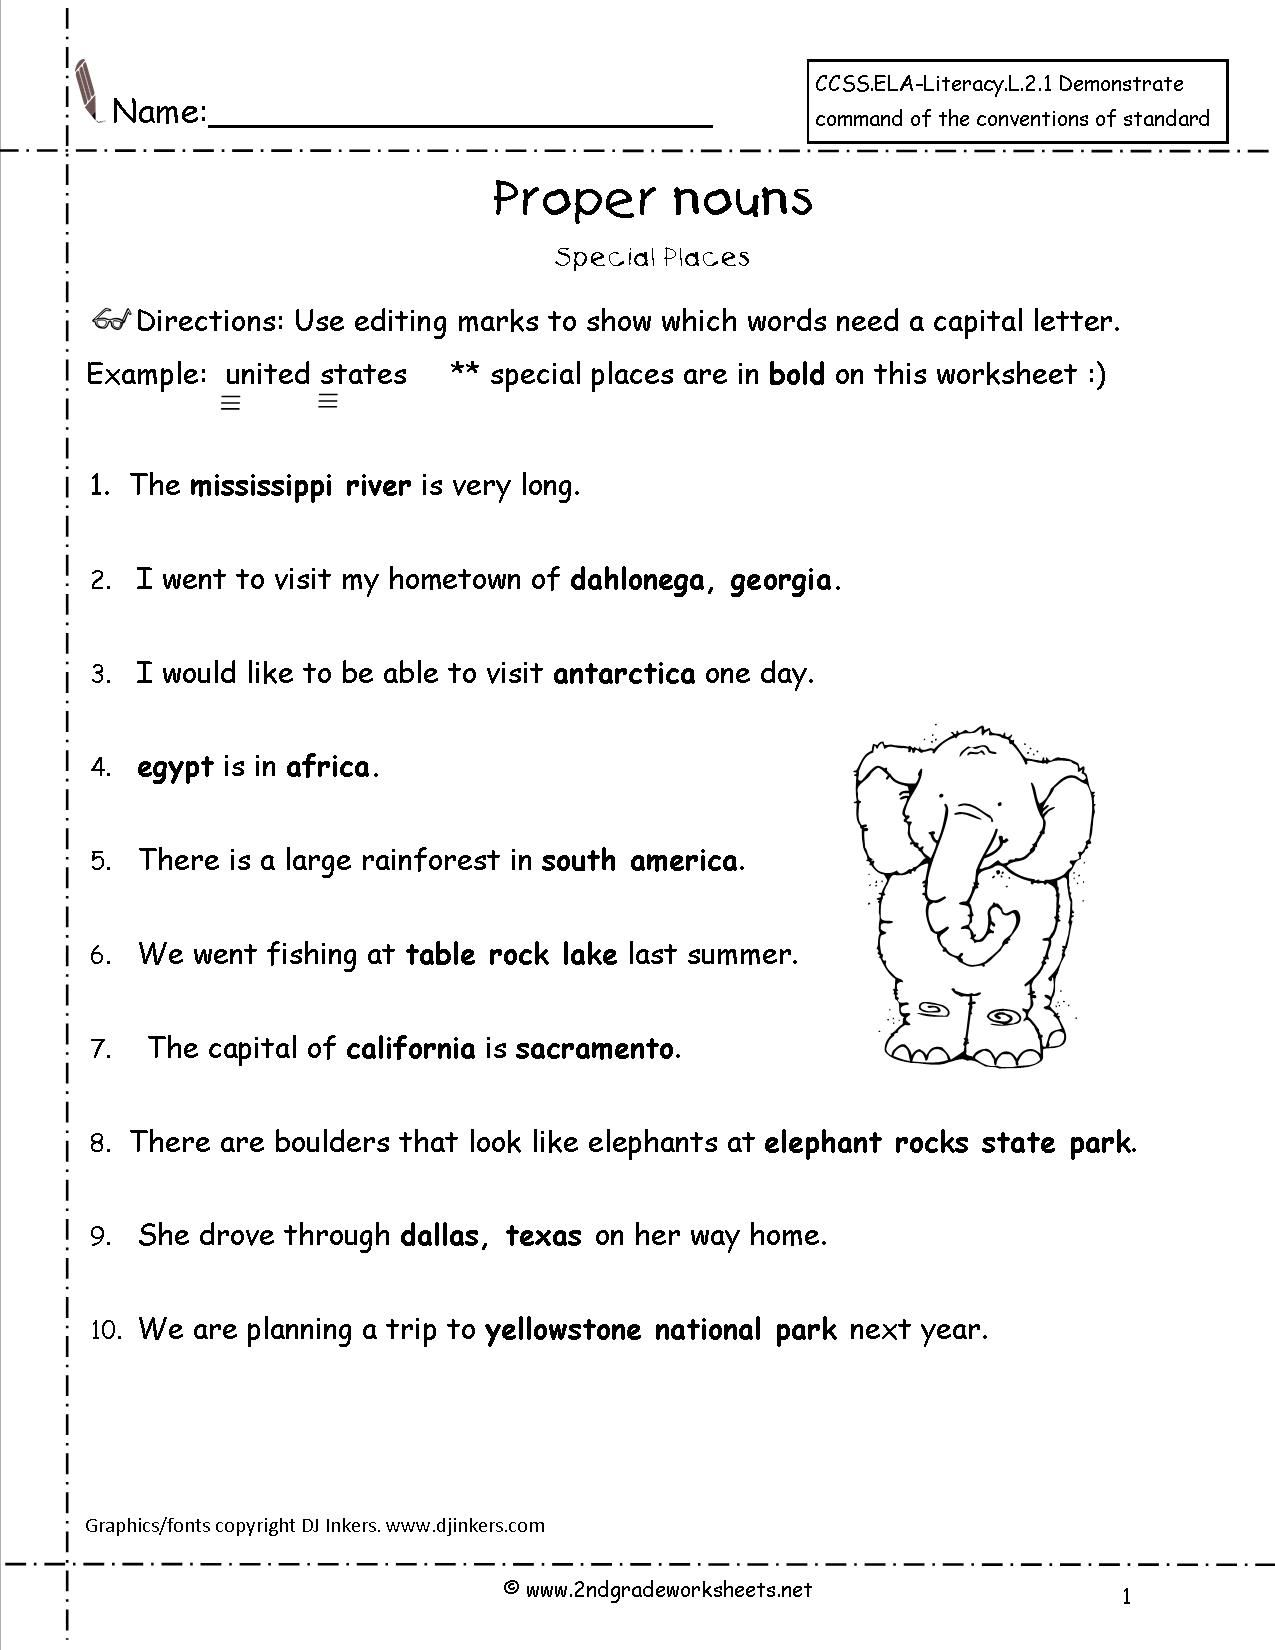 Uncategorized Noun Worksheets For 1st Grade proper nouns worksheet languageliteracy pinterest worksheet